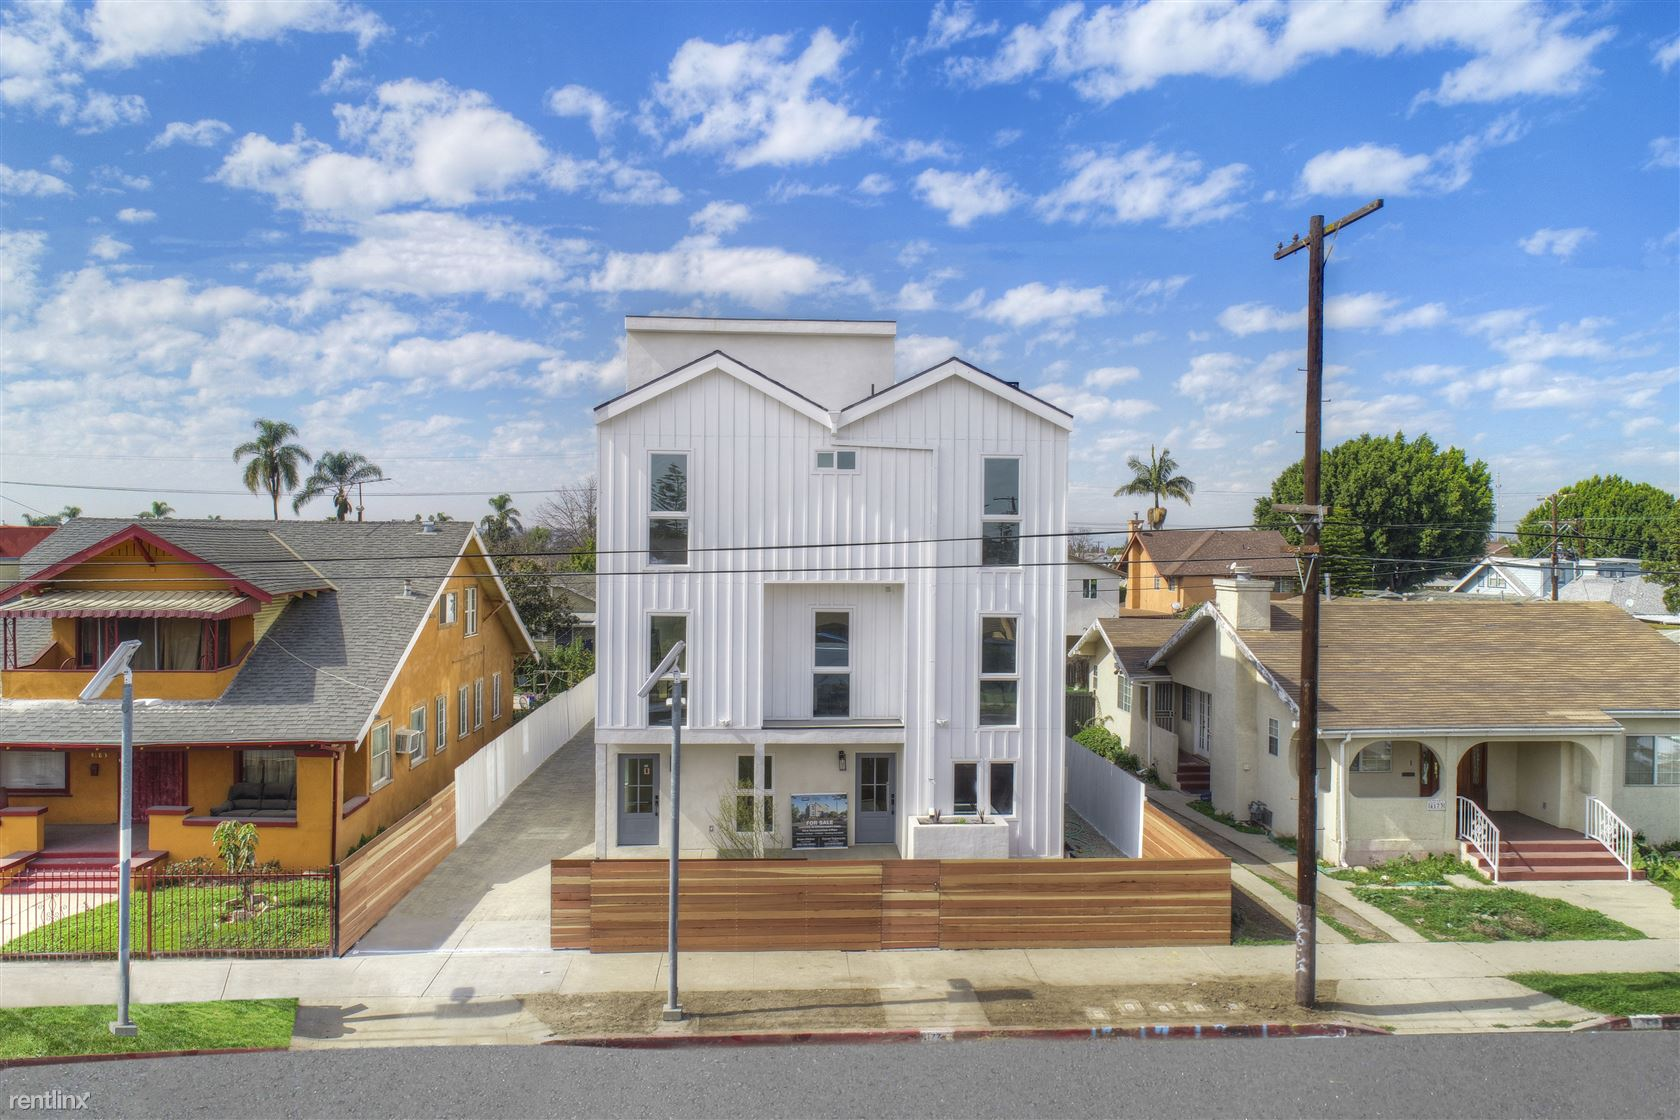 4177 S Normandie Ave - 3695USD / month